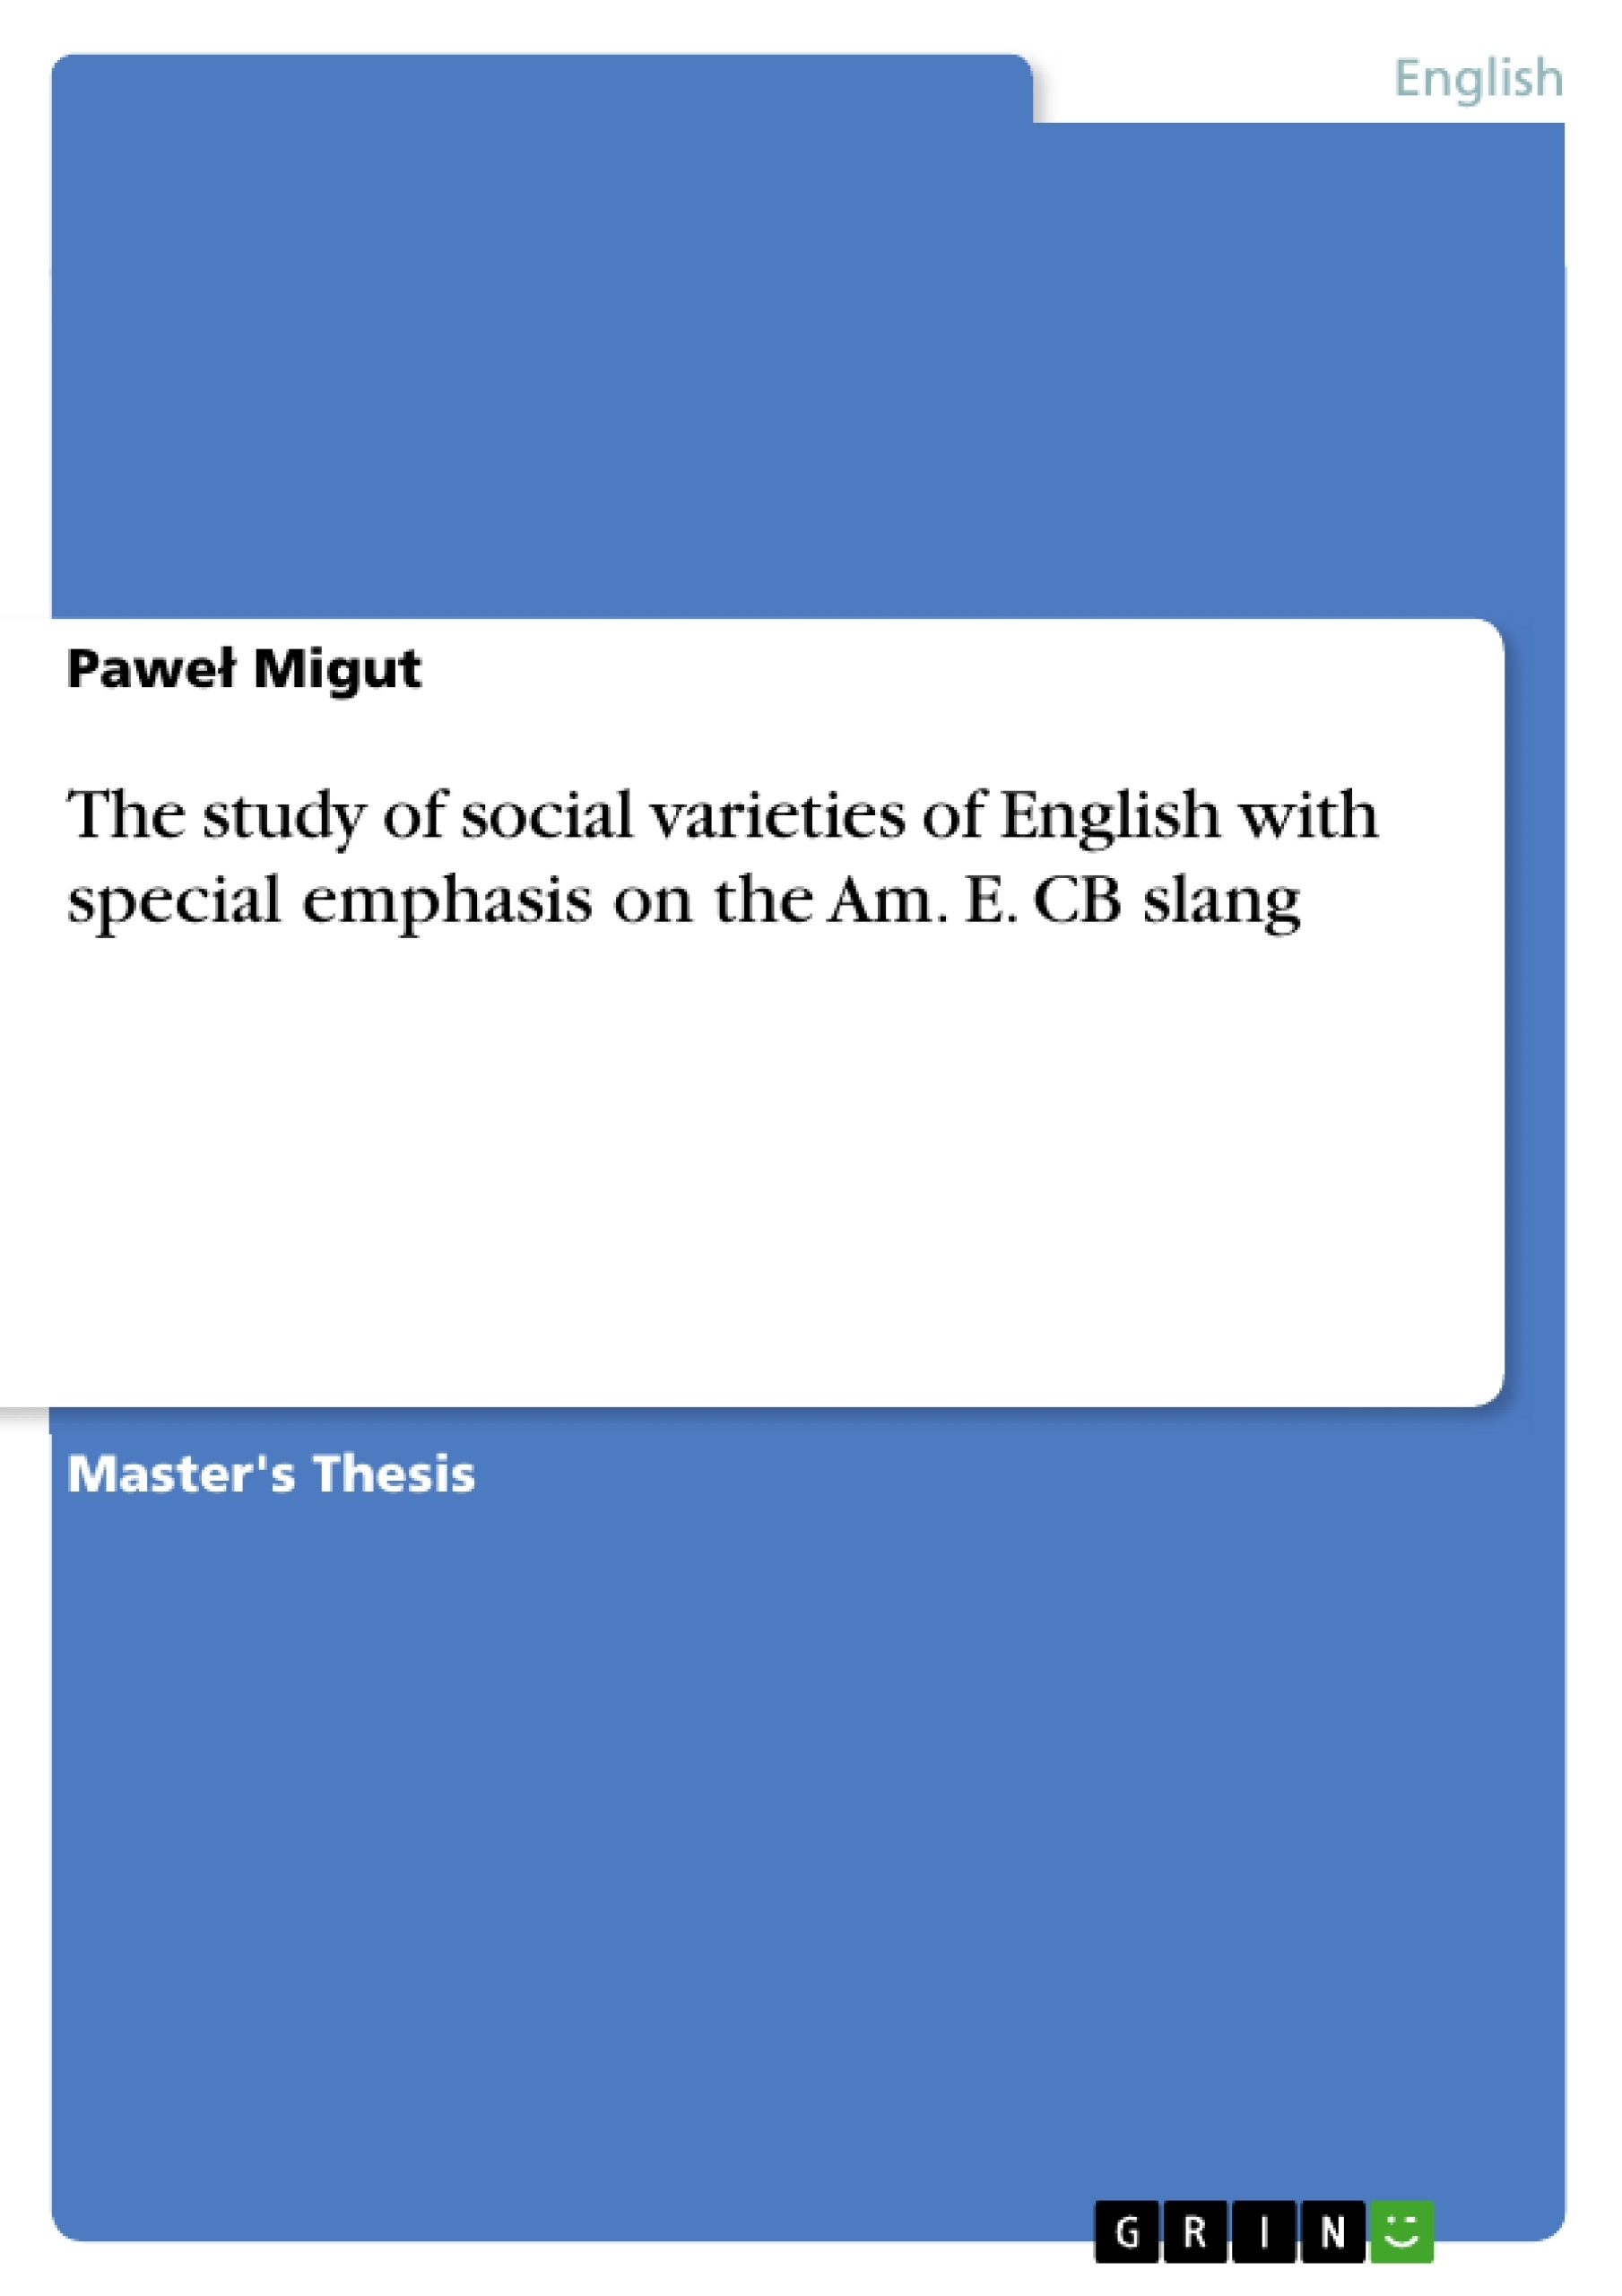 Title: The study of social varieties of English with special emphasis on the Am. E. CB slang